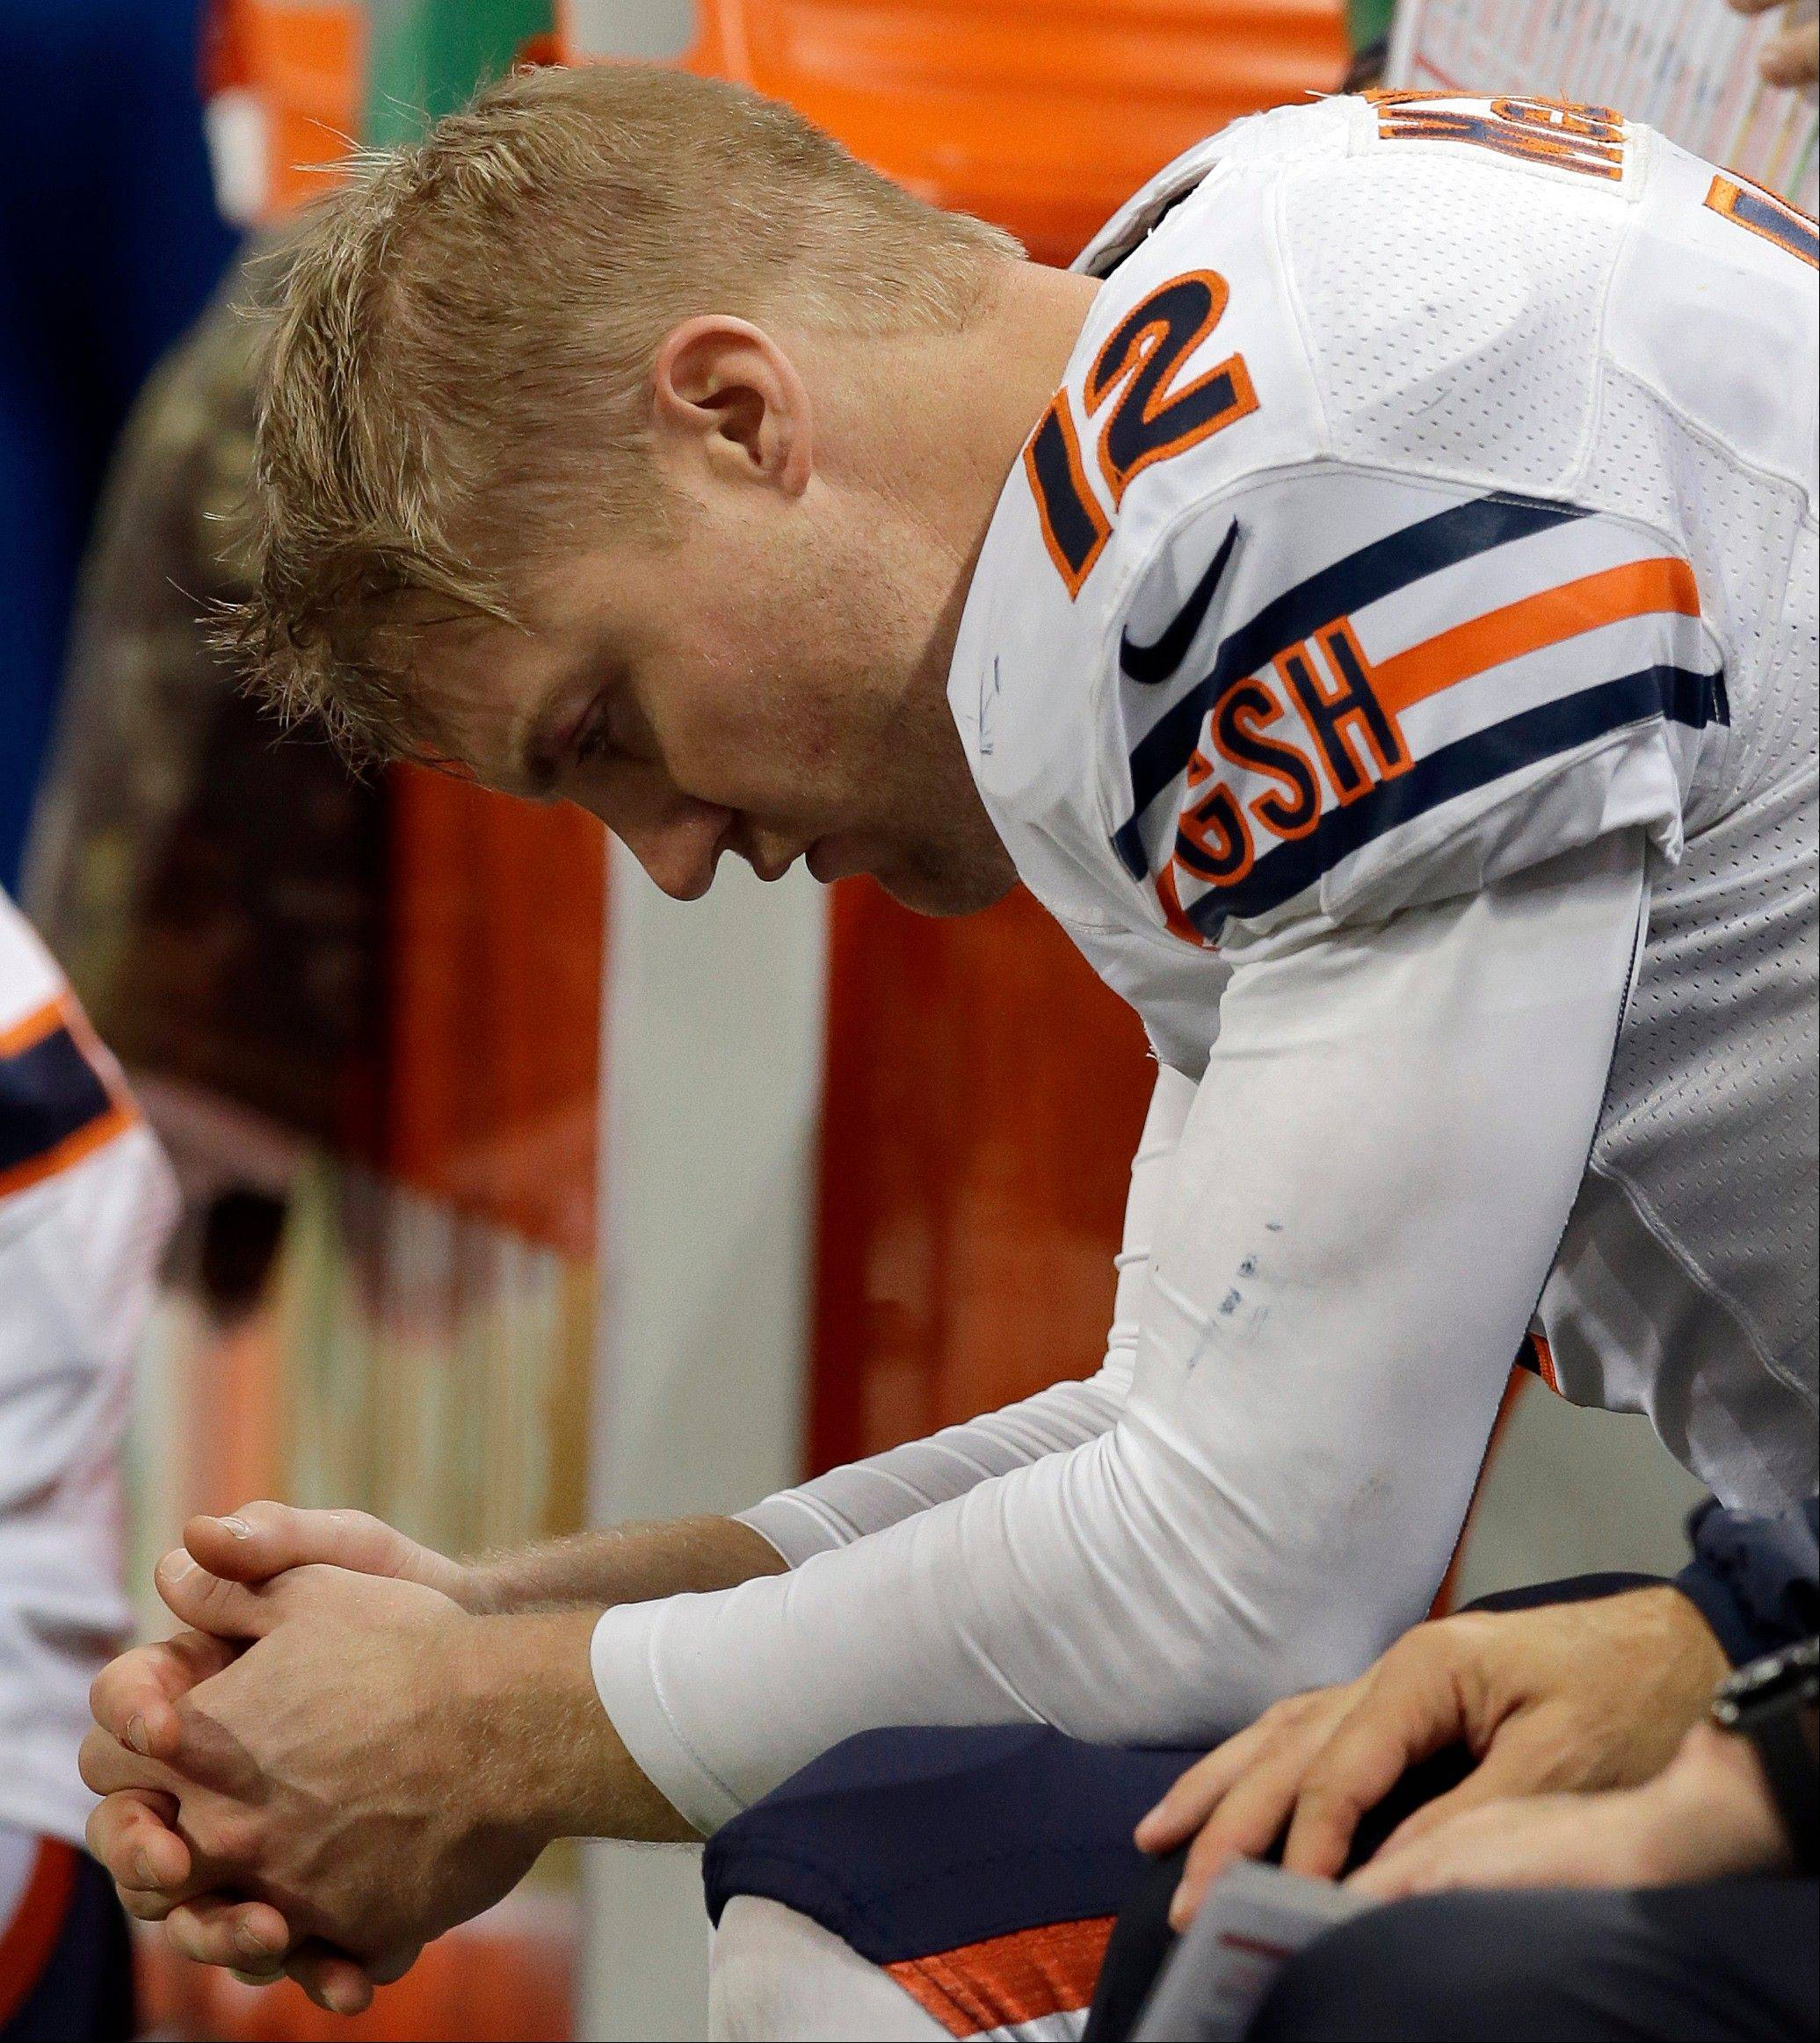 Chicago Bears quarterback Josh McCown sits on the bench during the last minute of an NFL football game against the St. Louis Rams. The Rams won 42-21.